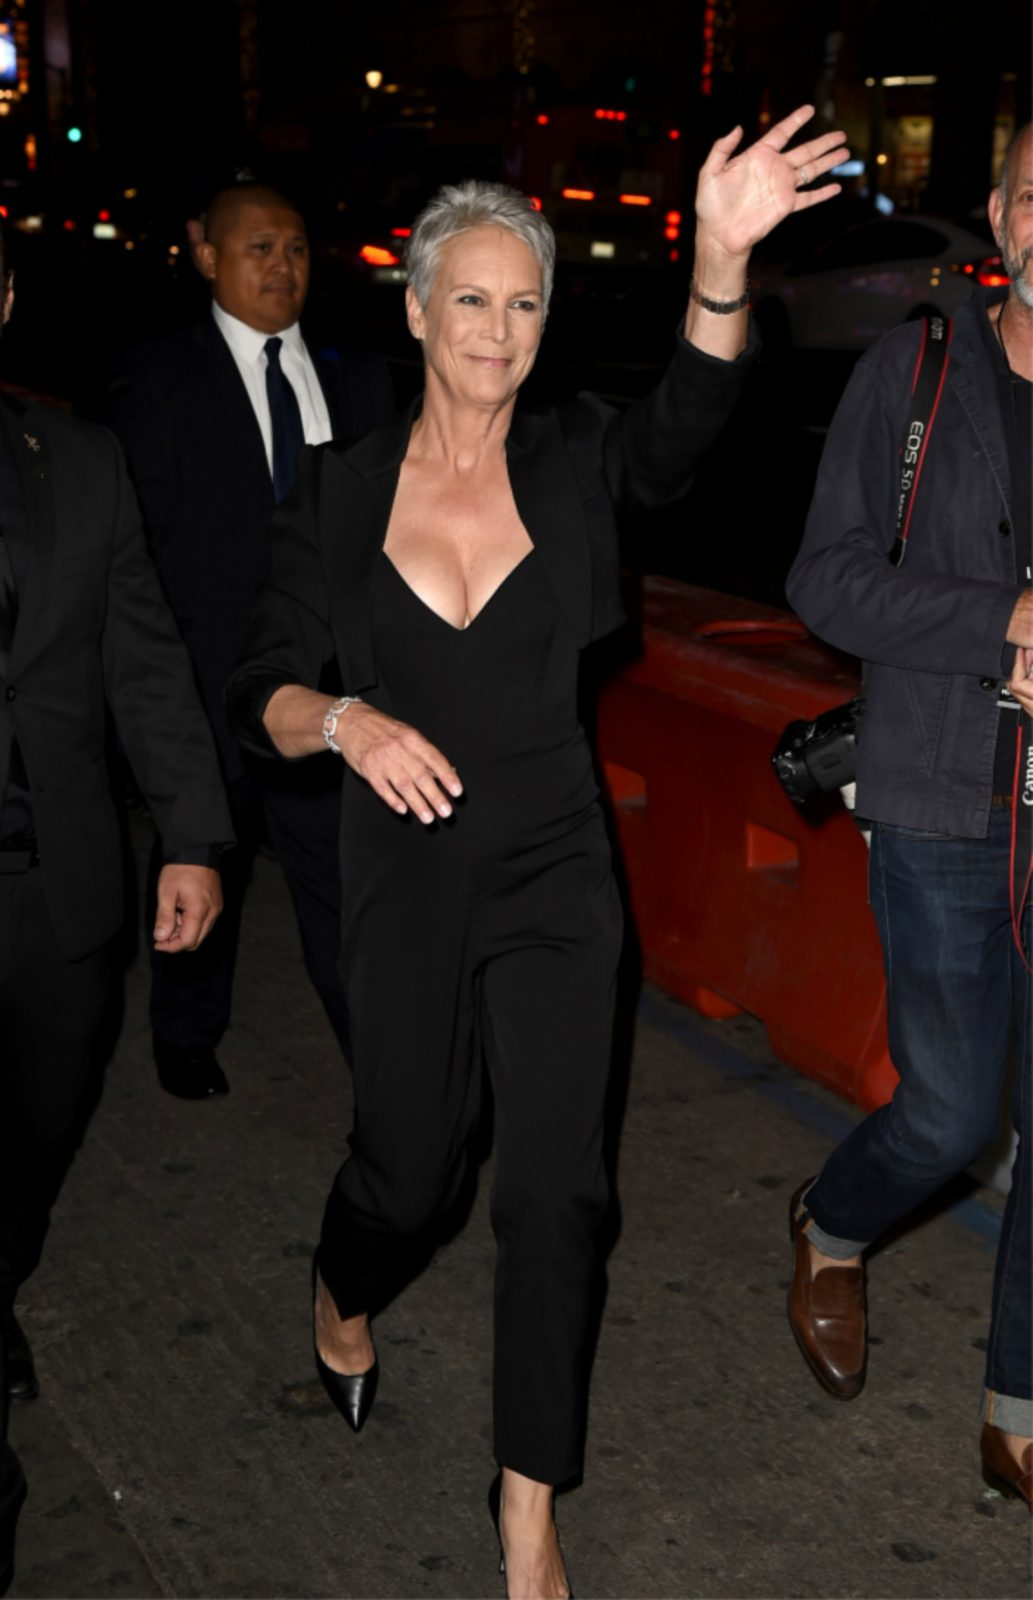 Jame Lee Curtis at a film premiere last year.